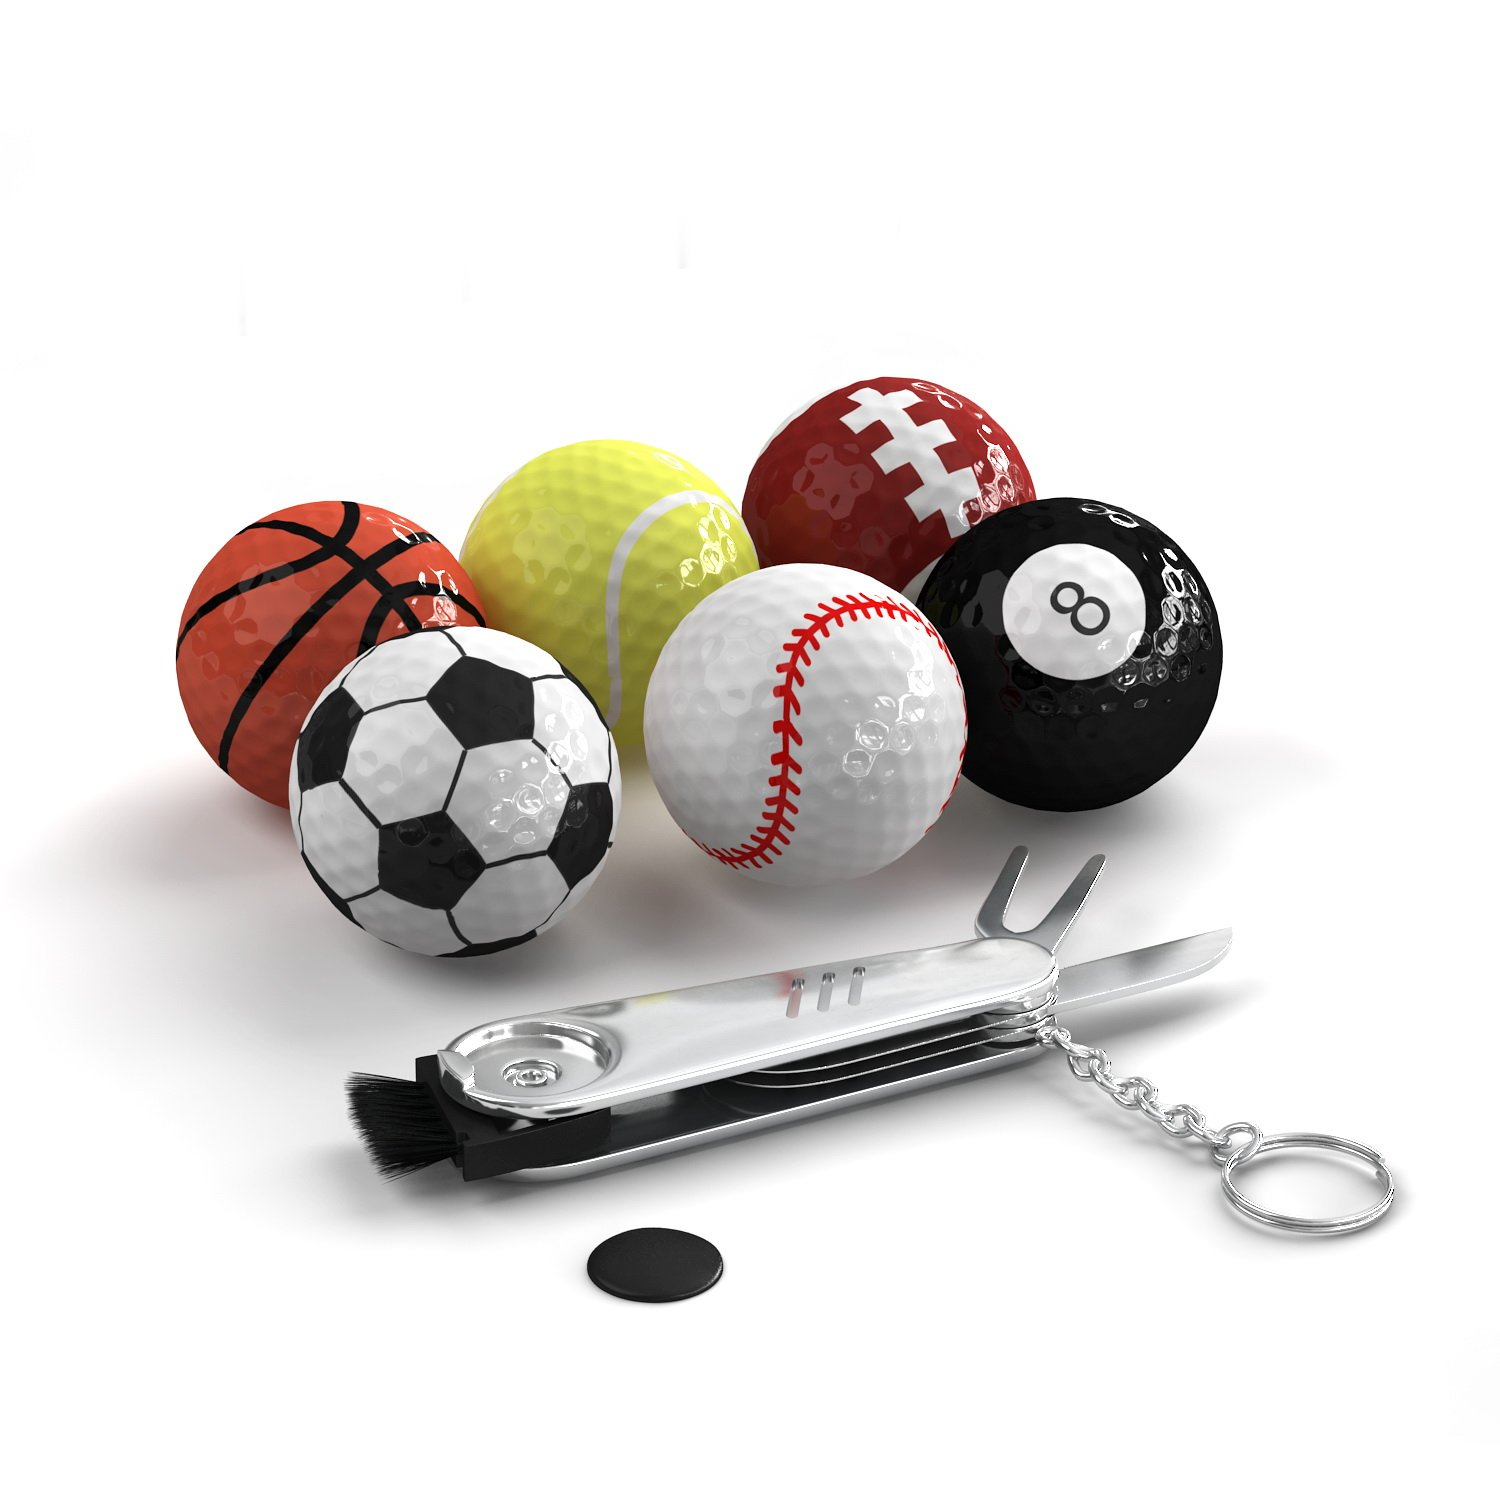 Trained Sports Themed Golf Balls Set By Pack Of 6 Novelty Balls With Multifunction Golf Tool, Gift Idea For Golfers For Every Occasion, Unique And Fun Design